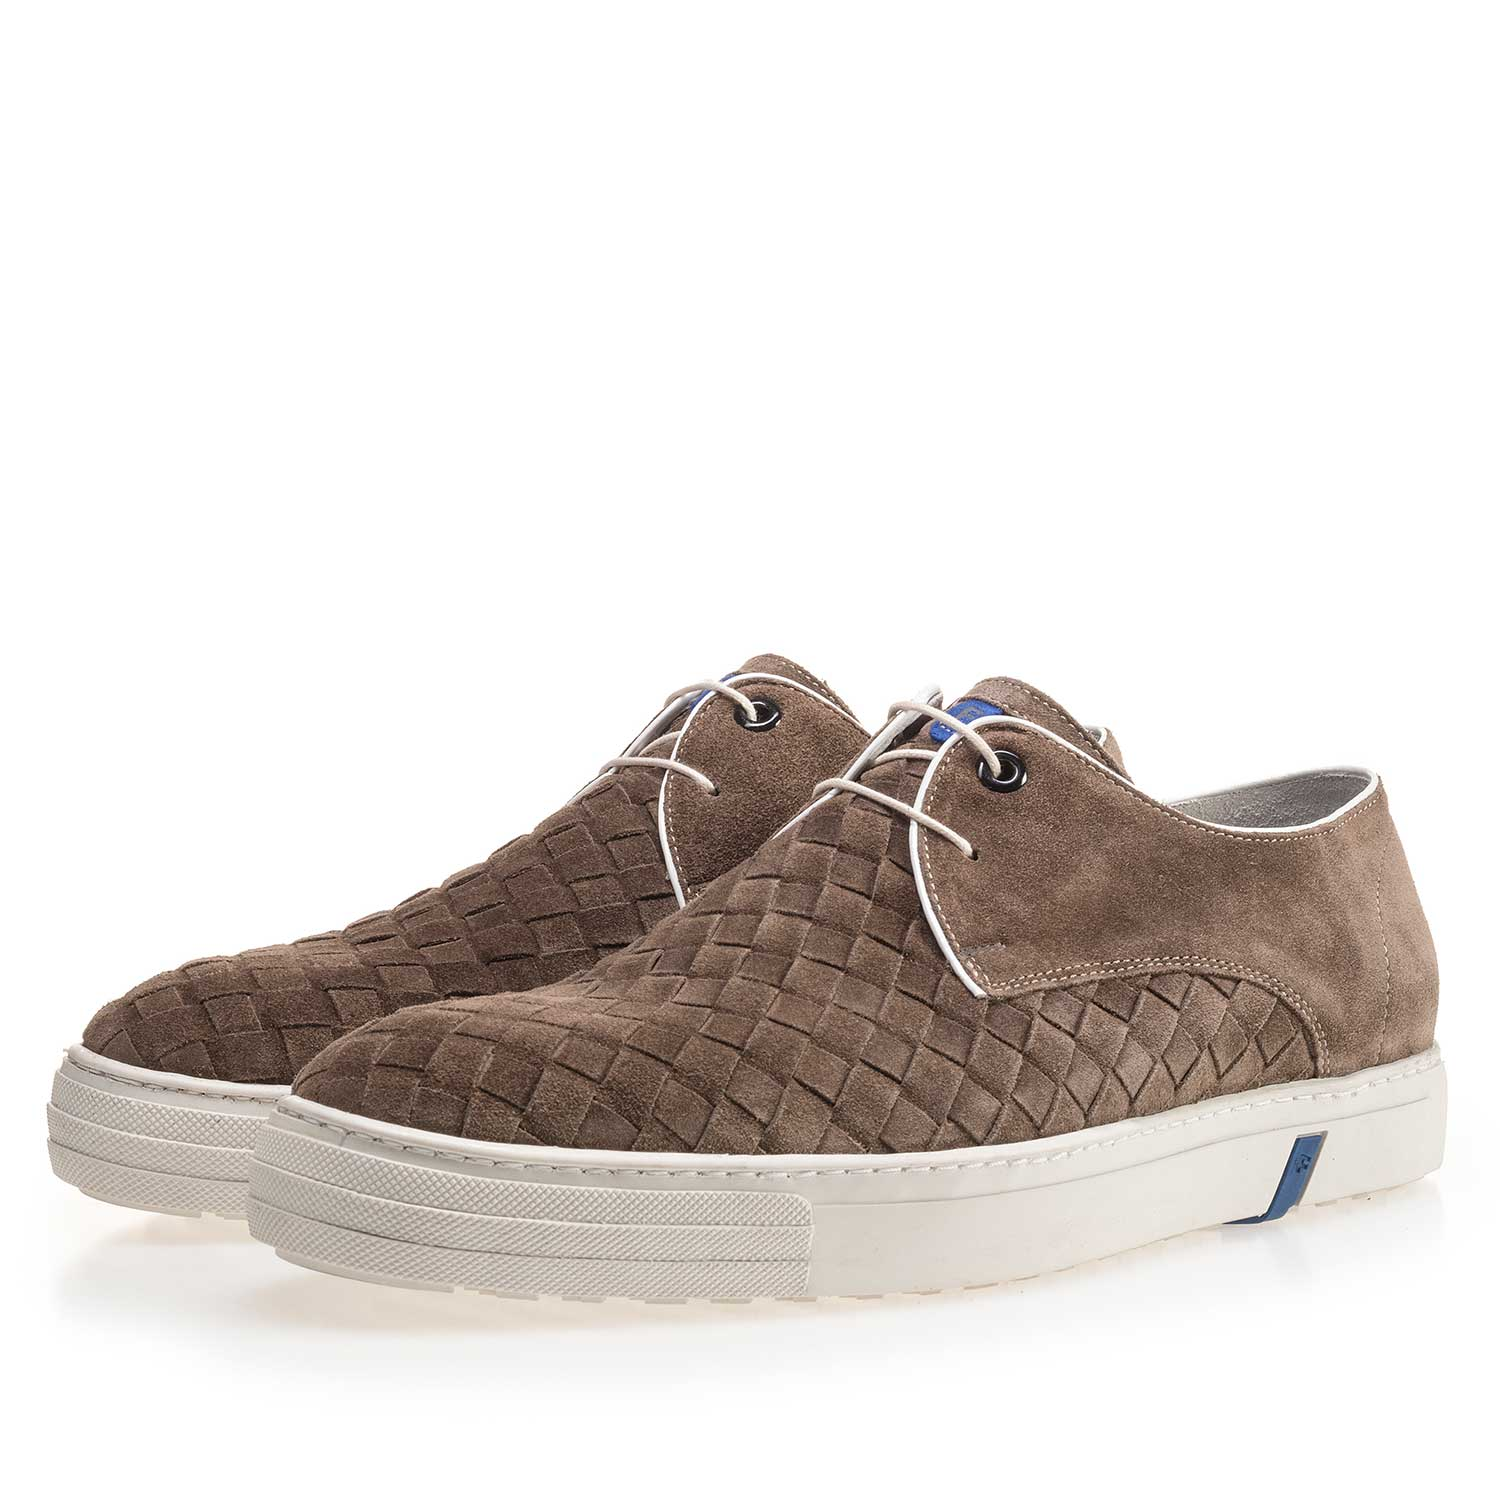 14451/07 - Taupe-coloured lace shoe made of braided leather